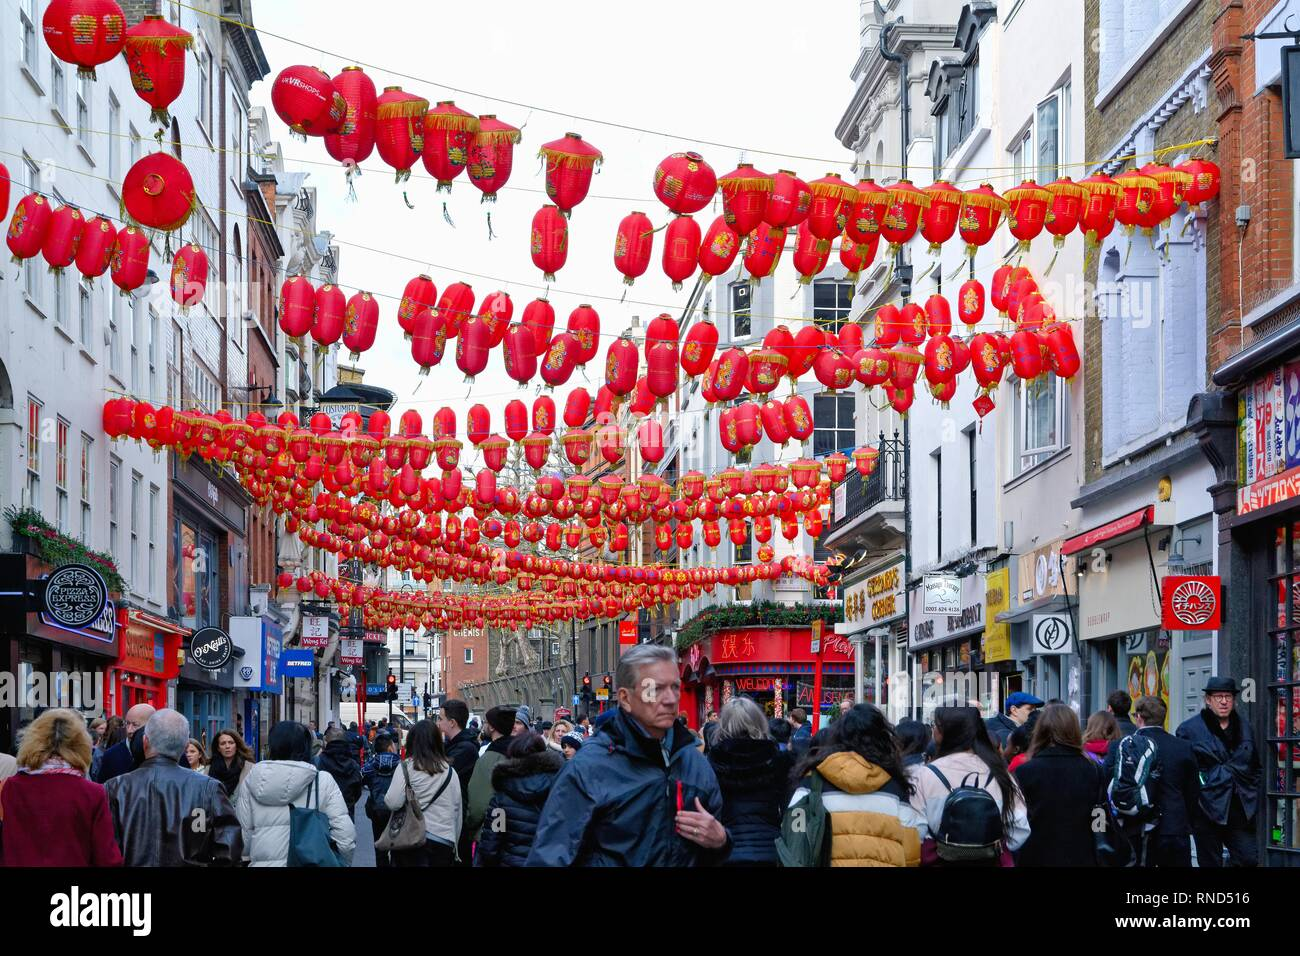 The Chinatown area in central London with the streets decorated with many red Chinese lanterns England UK - Stock Image